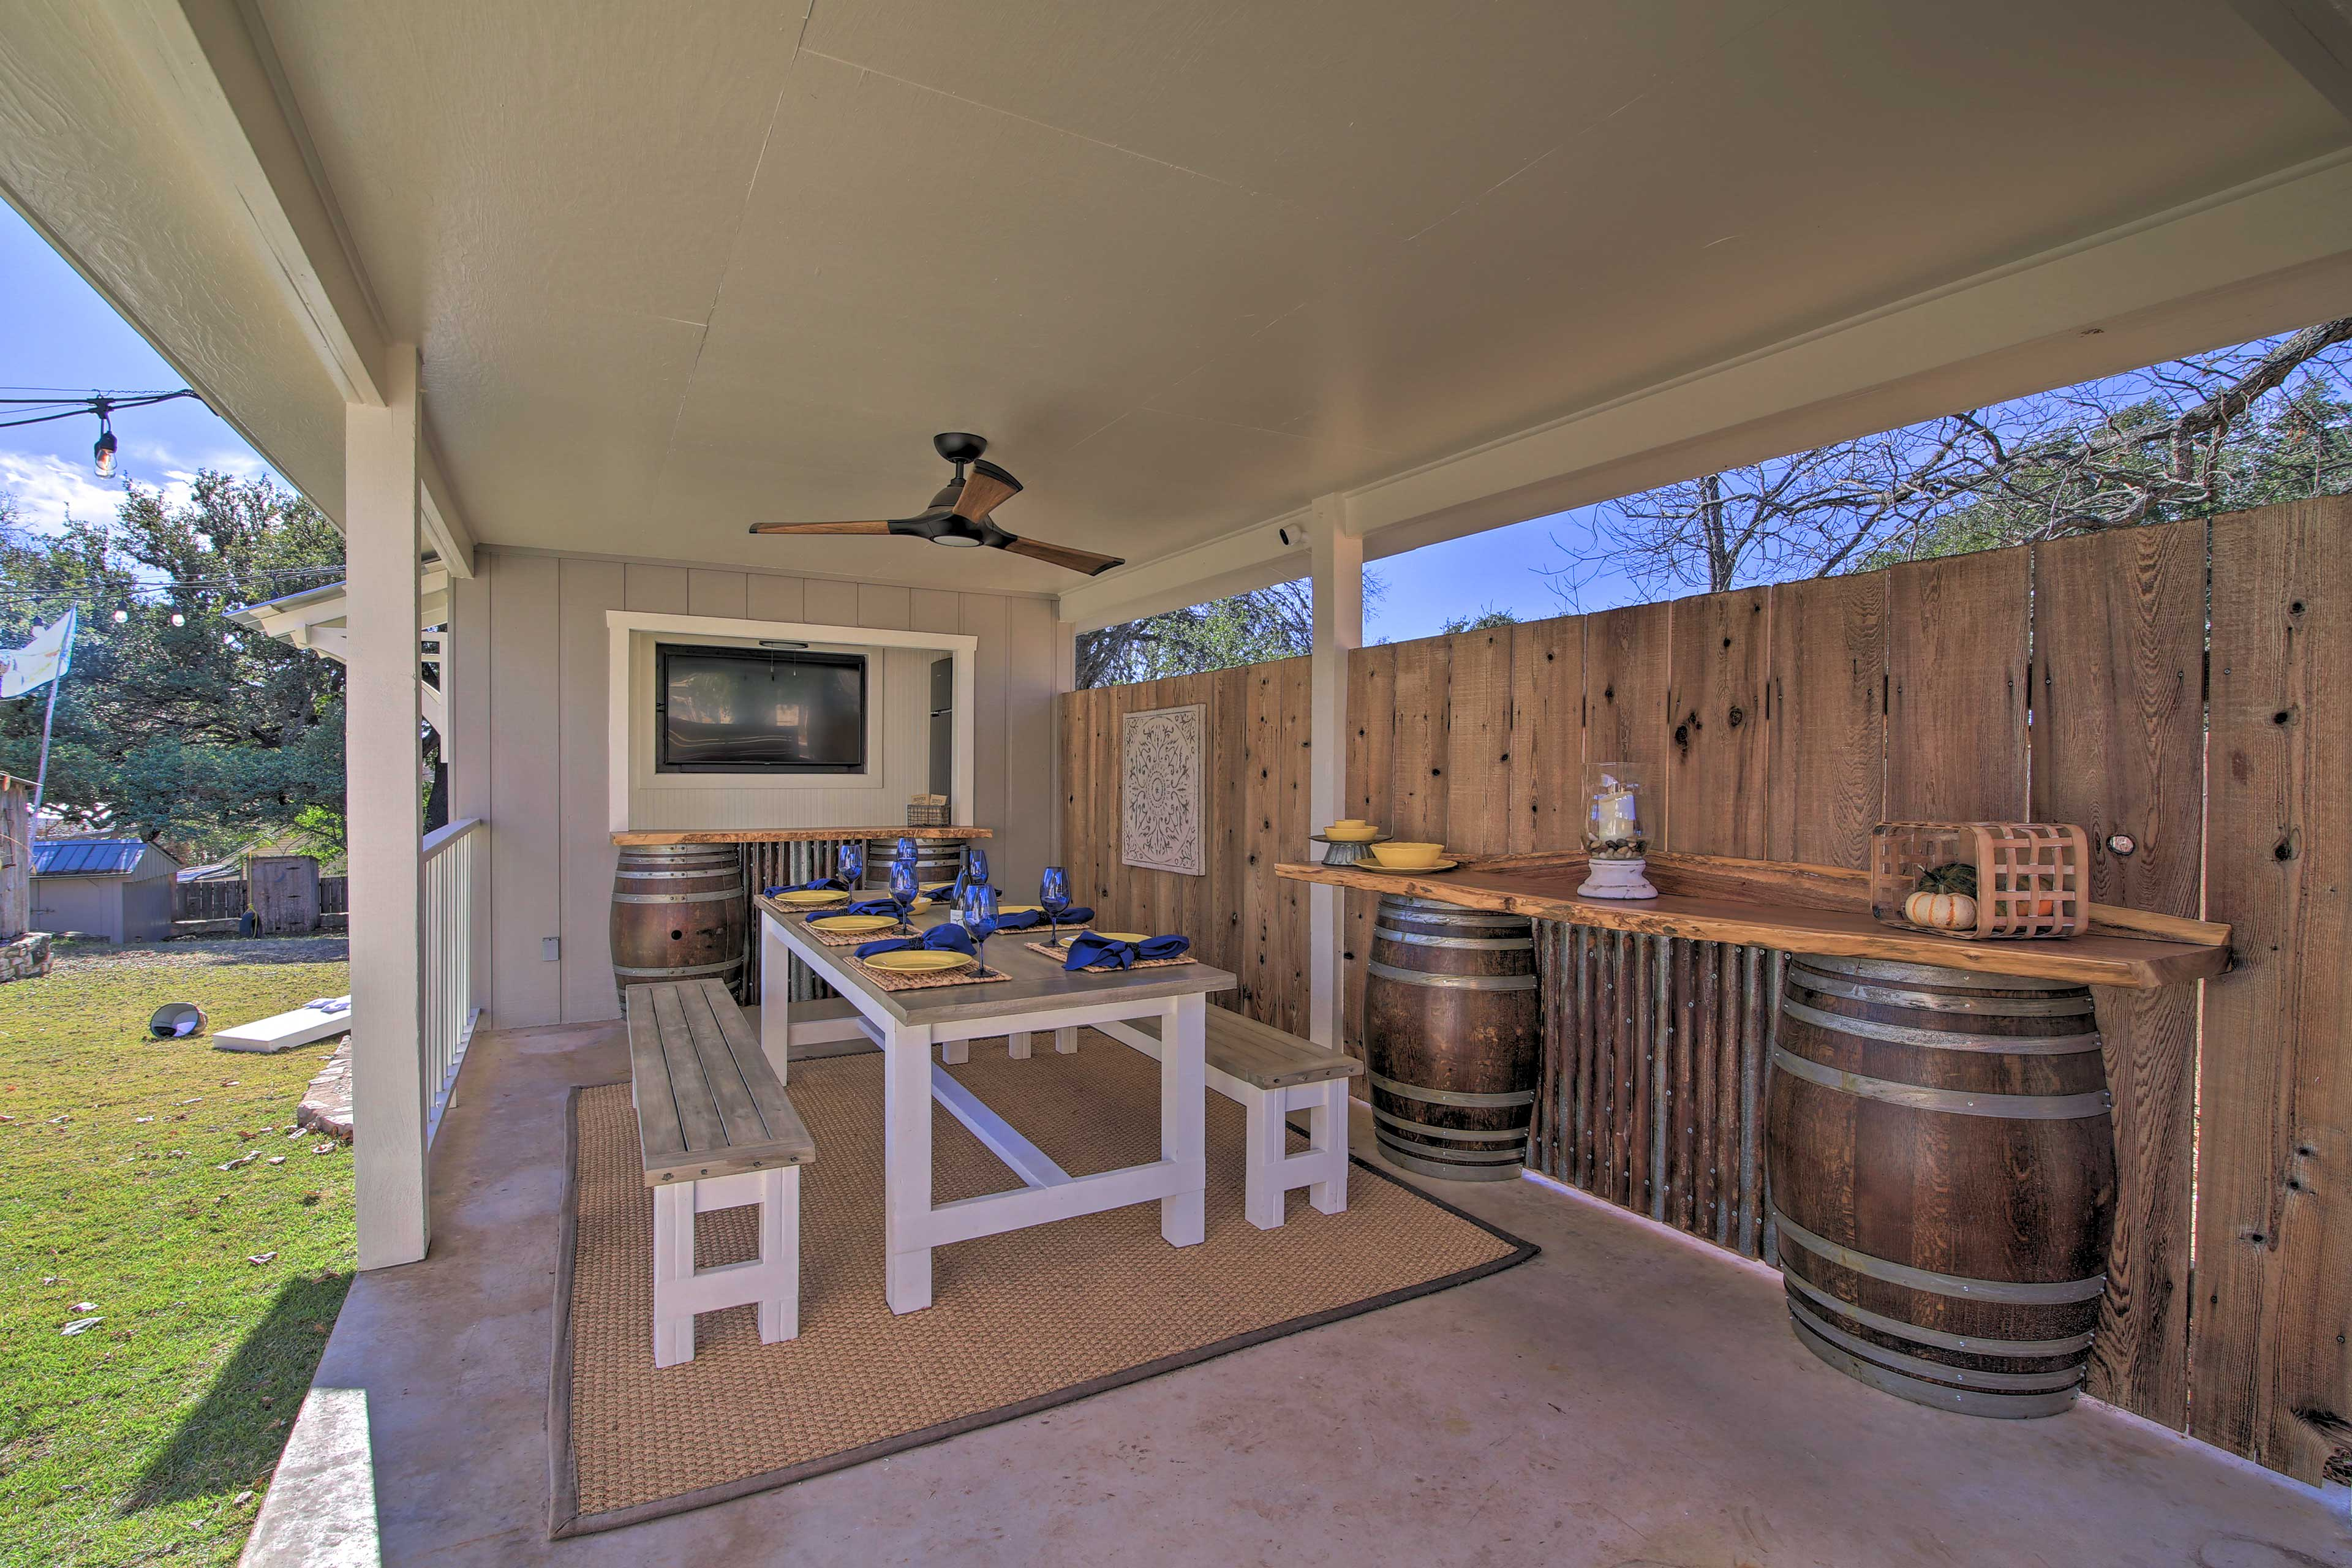 Covered Deck | Outdoor Dining | Outdoor Refrigerator